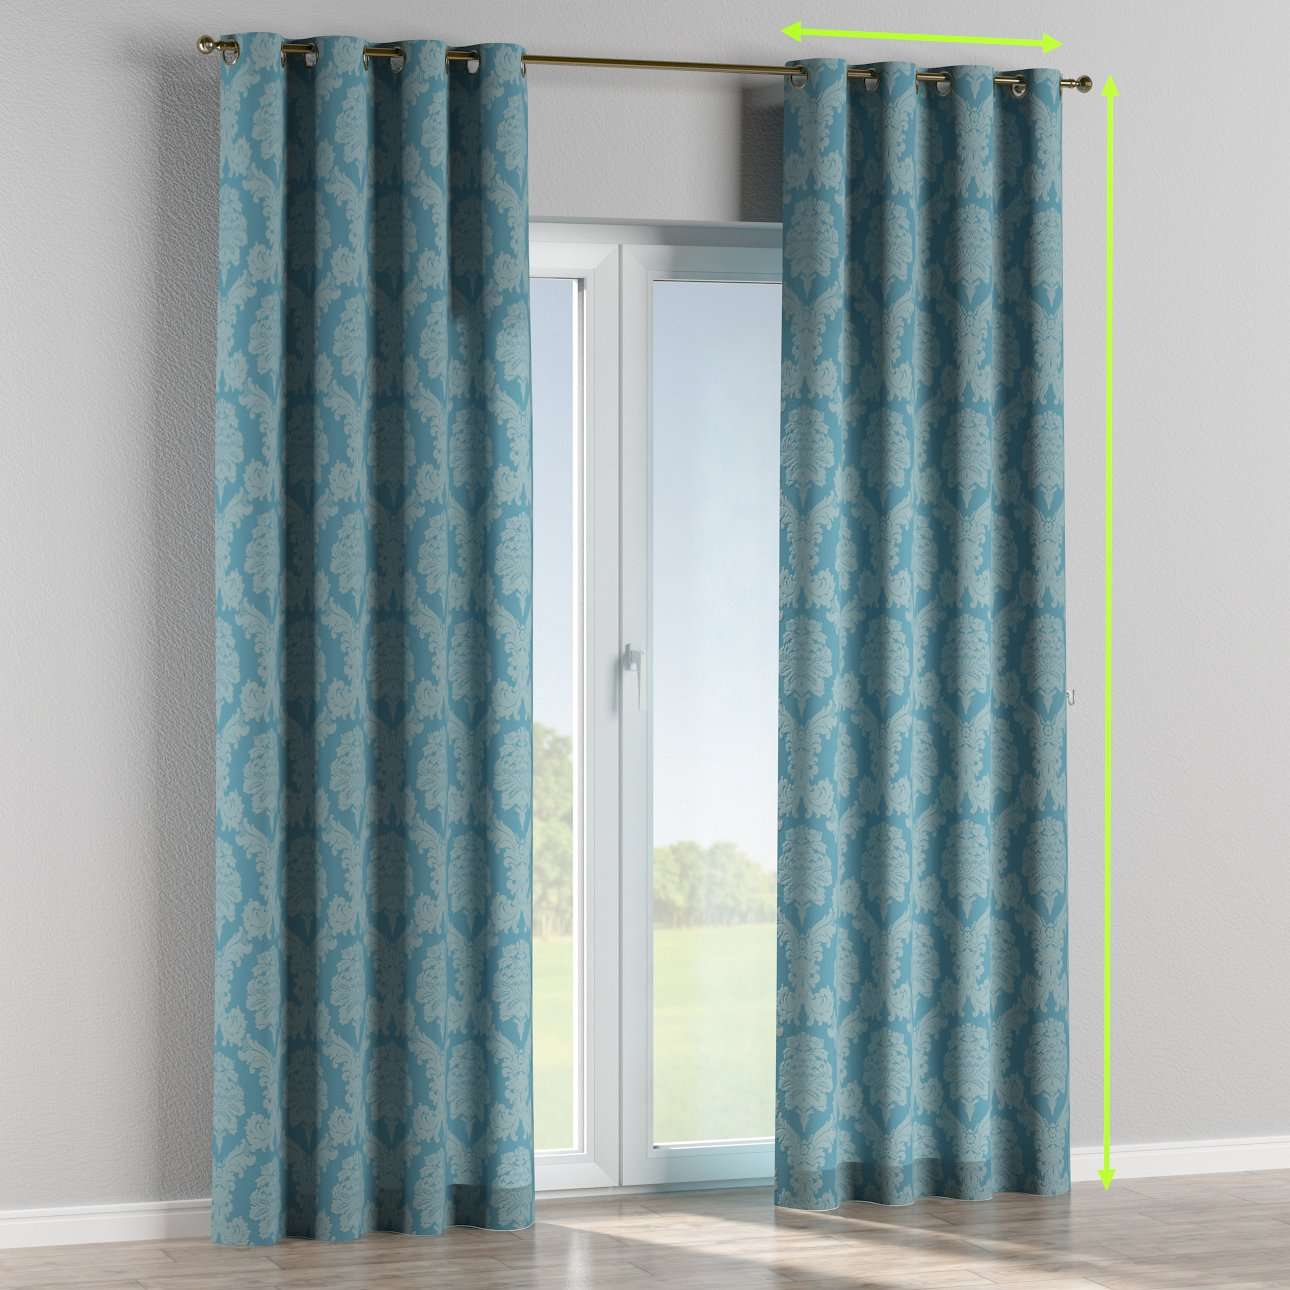 Eyelet curtains in collection Damasco, fabric: 613-67